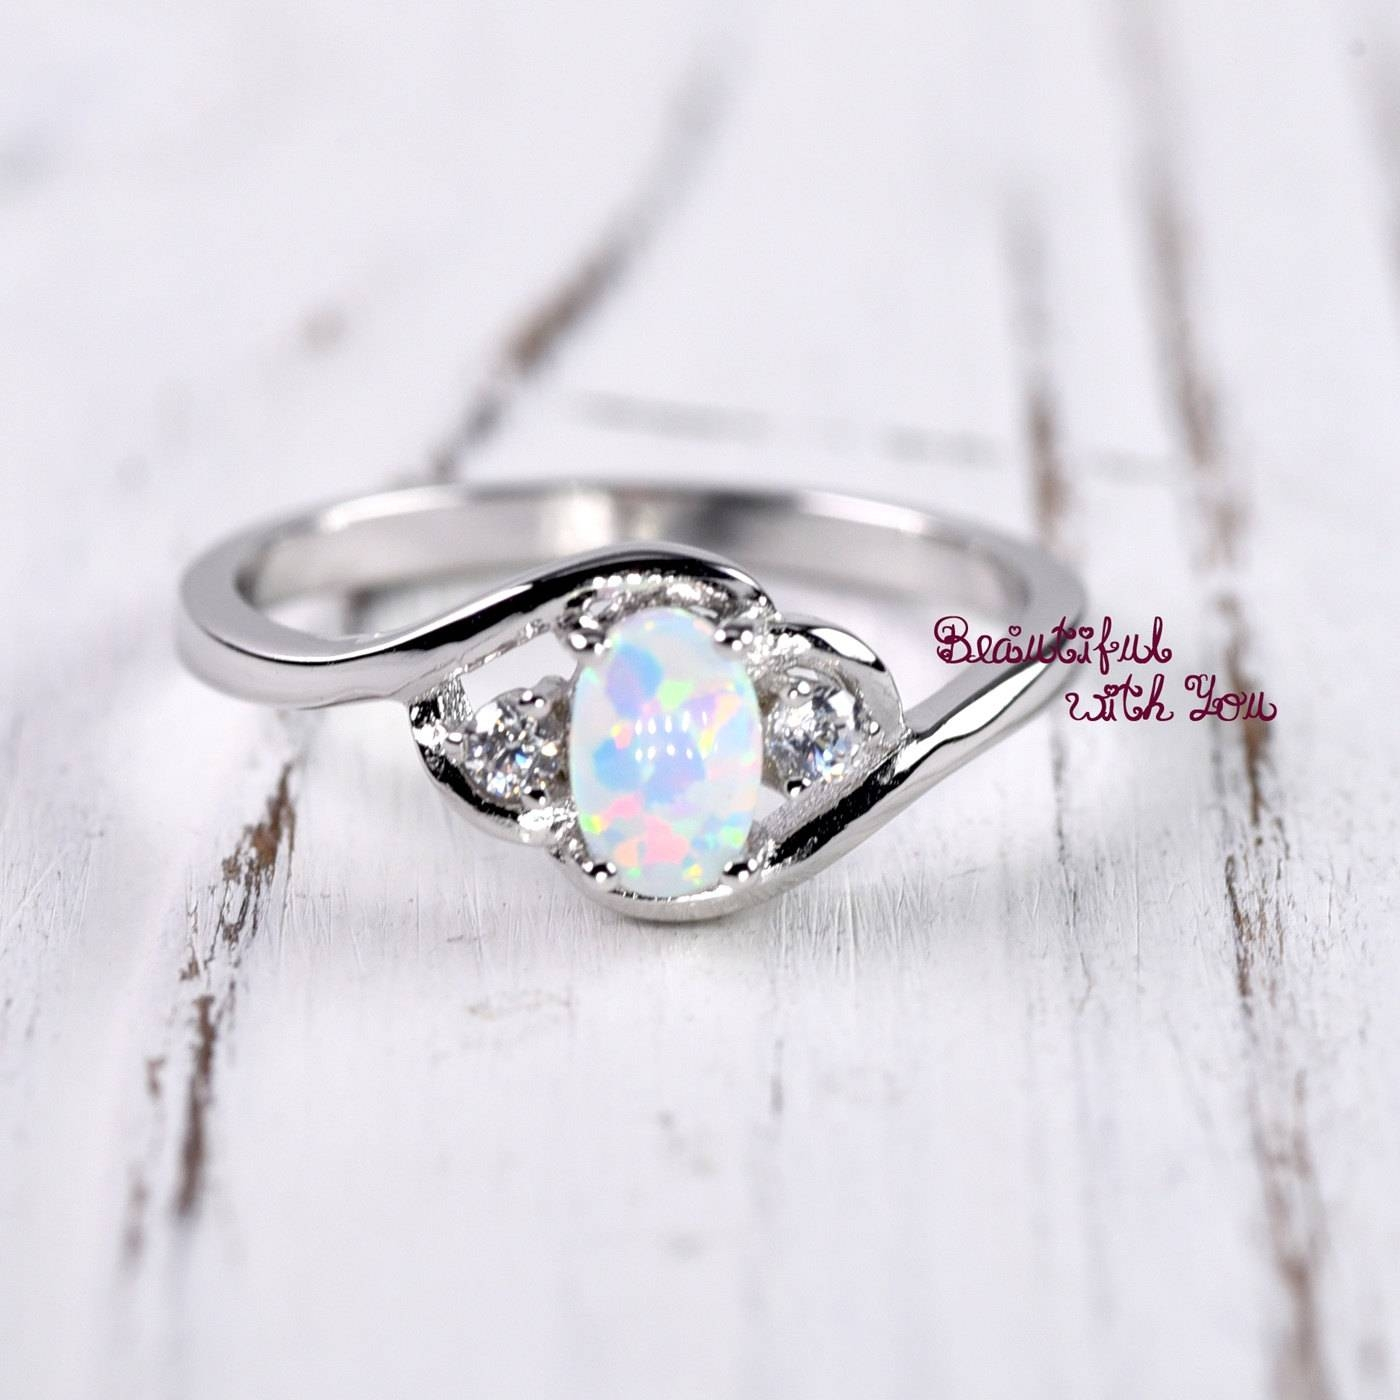 White Opal Ring Silver Lab Opal Ring Opal Wedding Band Pertaining To Opal Wedding Rings (View 14 of 15)